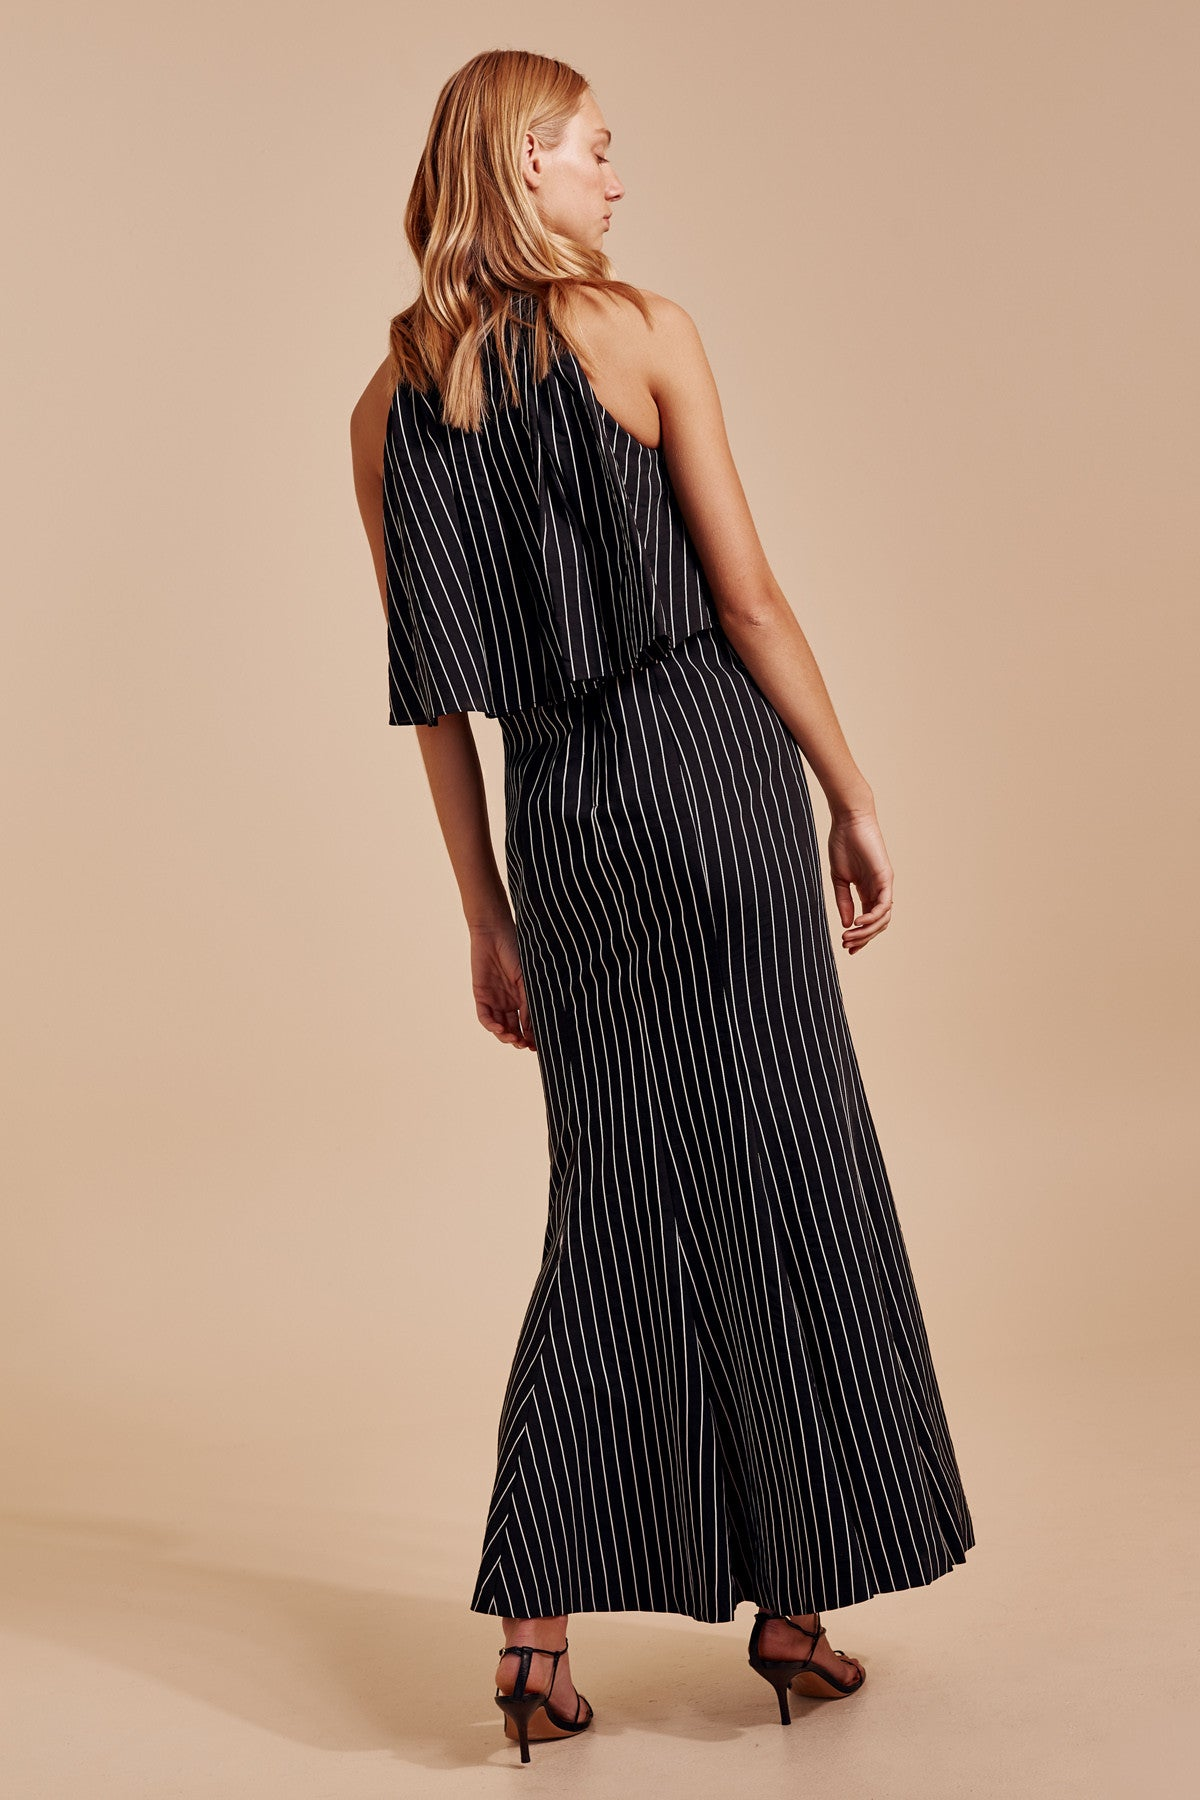 SUFFUSE GOWN black stripe